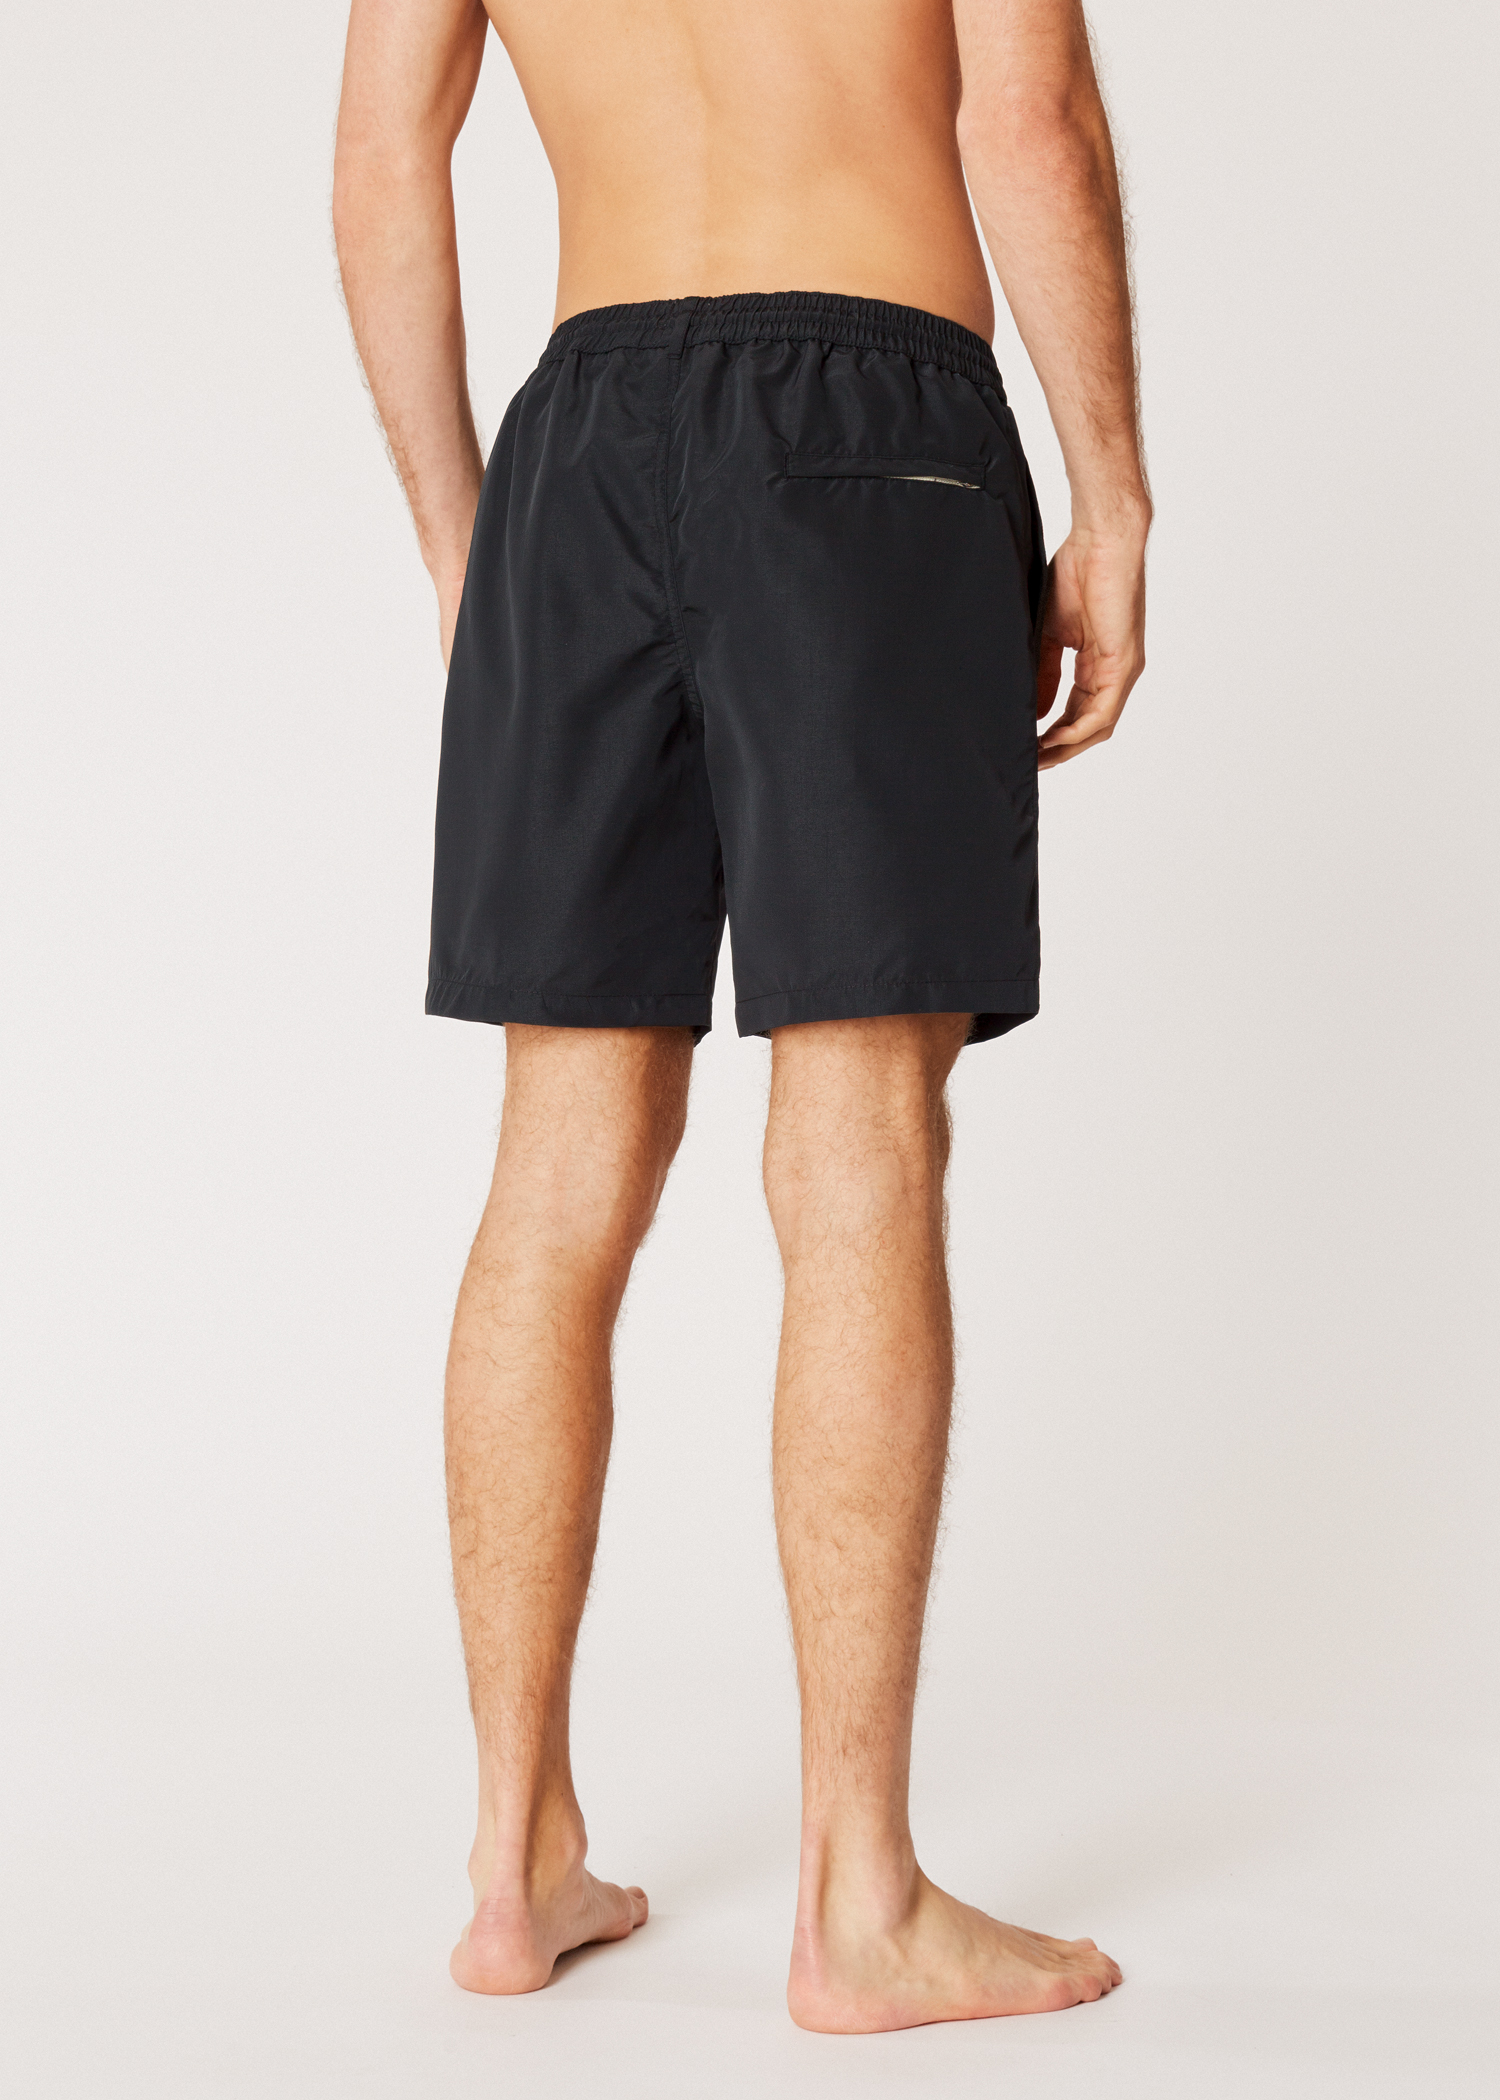 39081d512a Model back view- Men's Black Long Swim Shorts Paul Smith